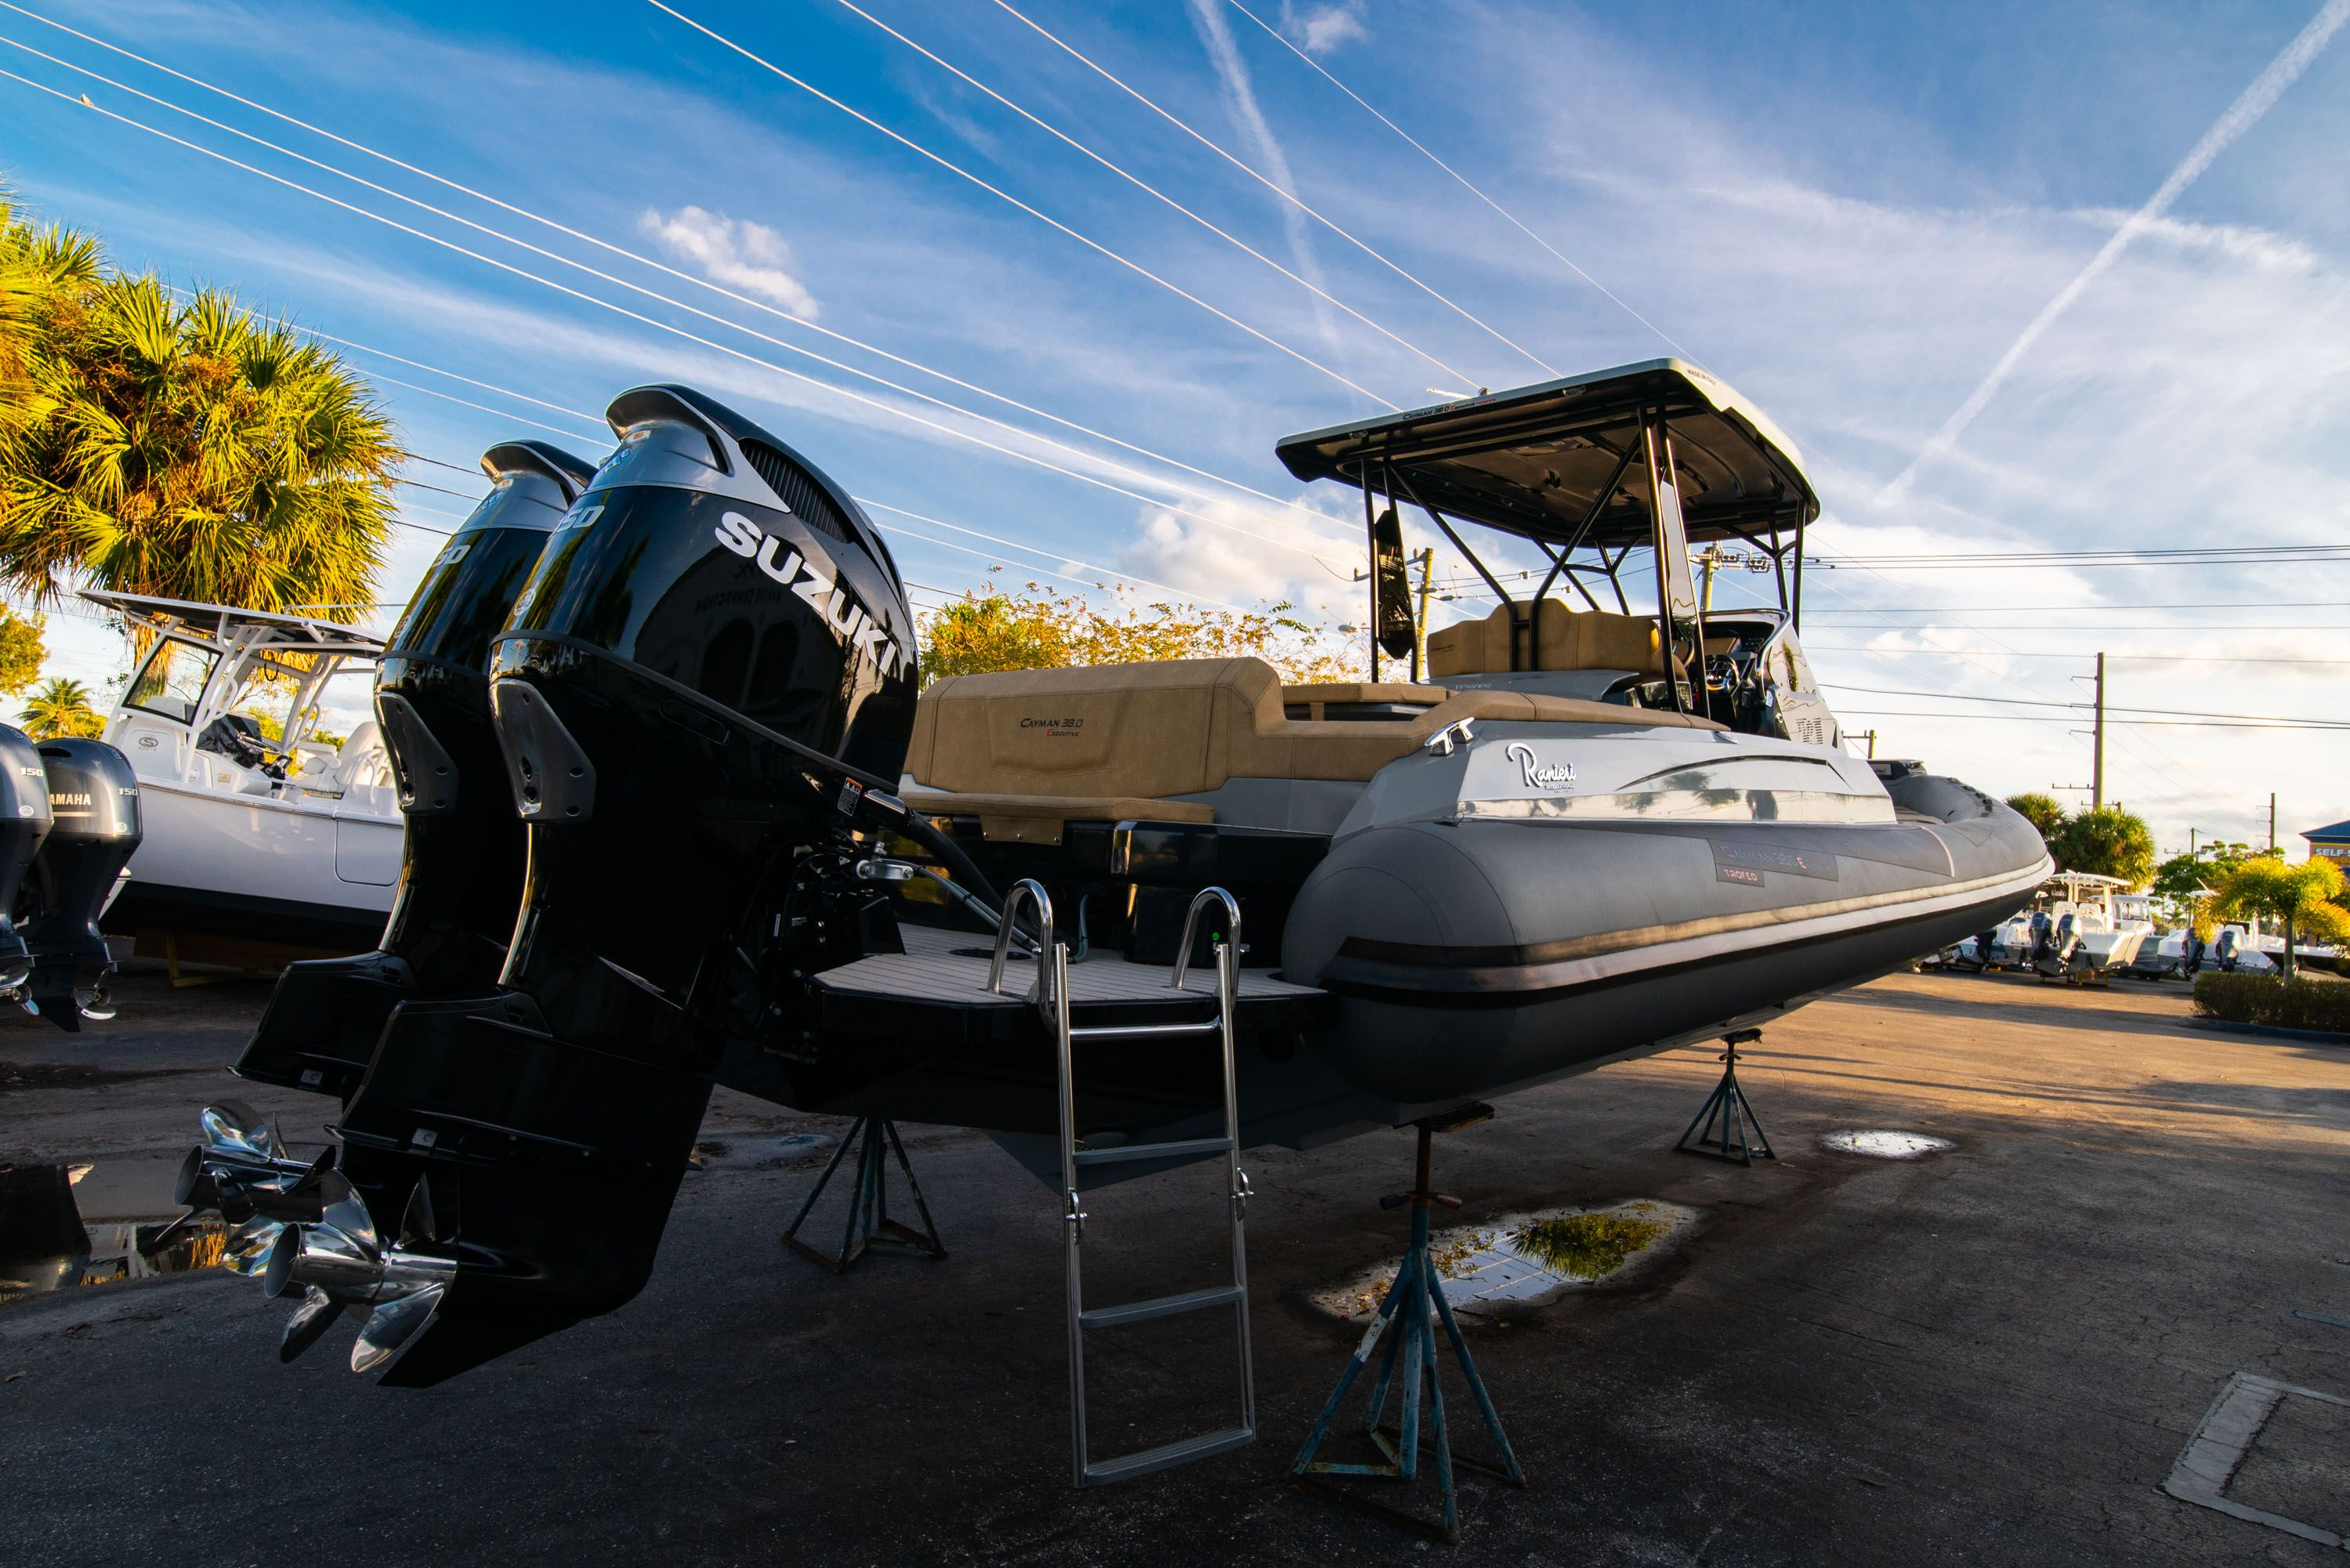 Thumbnail 3 for New 2019 Ranieri Cayman 38 Executive boat for sale in West Palm Beach, FL